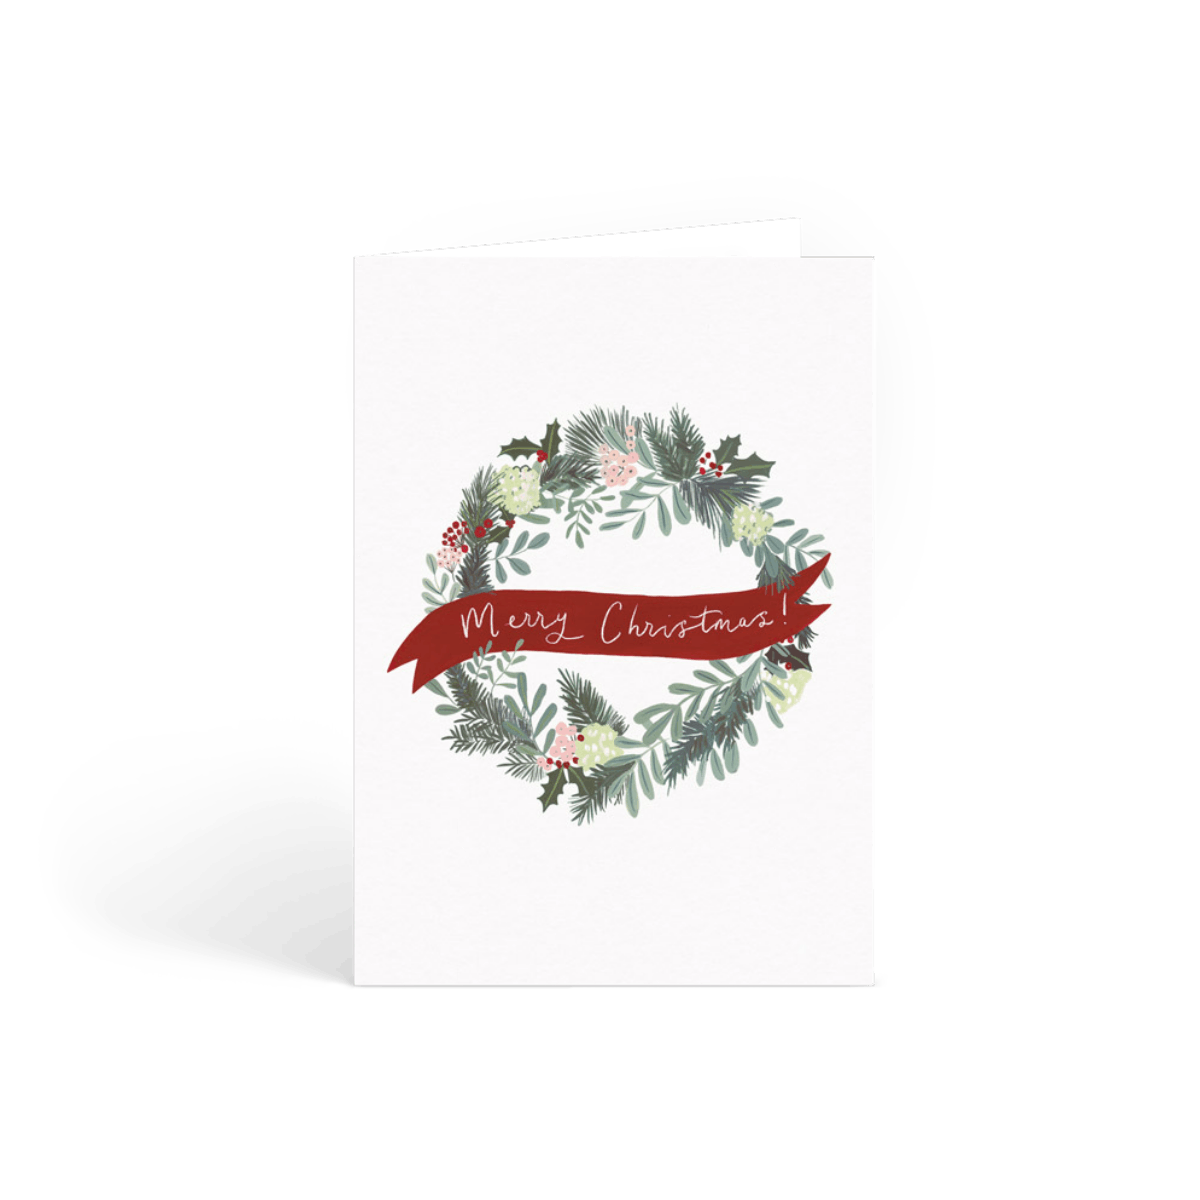 Https%3a%2f%2fwww.papier.com%2fproduct image%2f91091%2f2%2fmerry christmas wreath 22775 front 1570139073.png?ixlib=rb 1.1